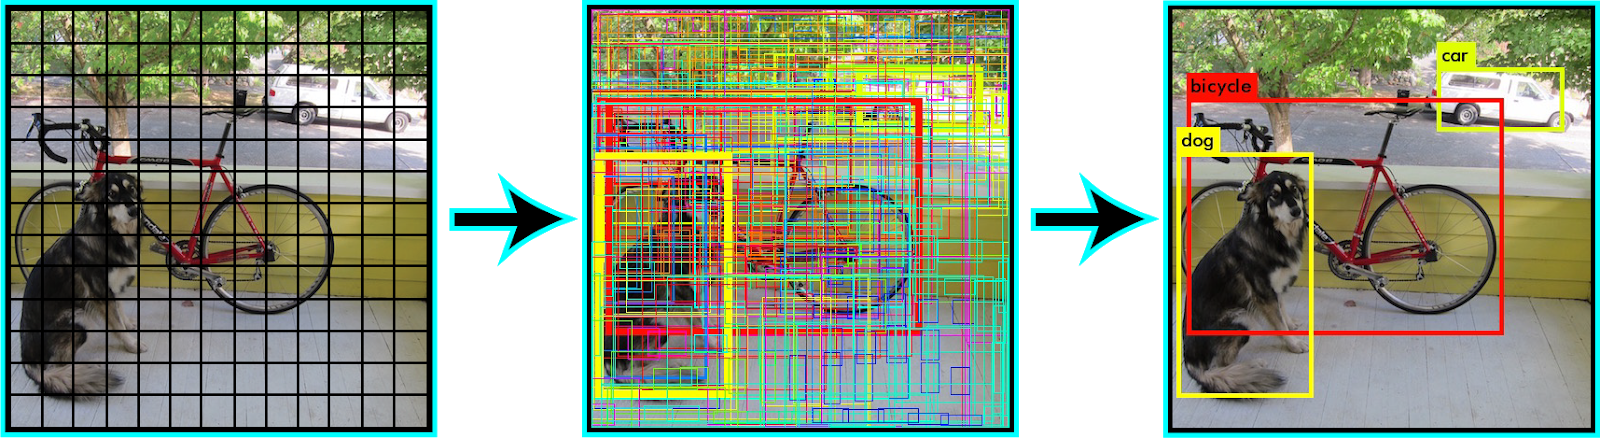 Image Divided into Grids; Before Non- Maximal Suppression; After Non Maximal Suppression (Final Output)